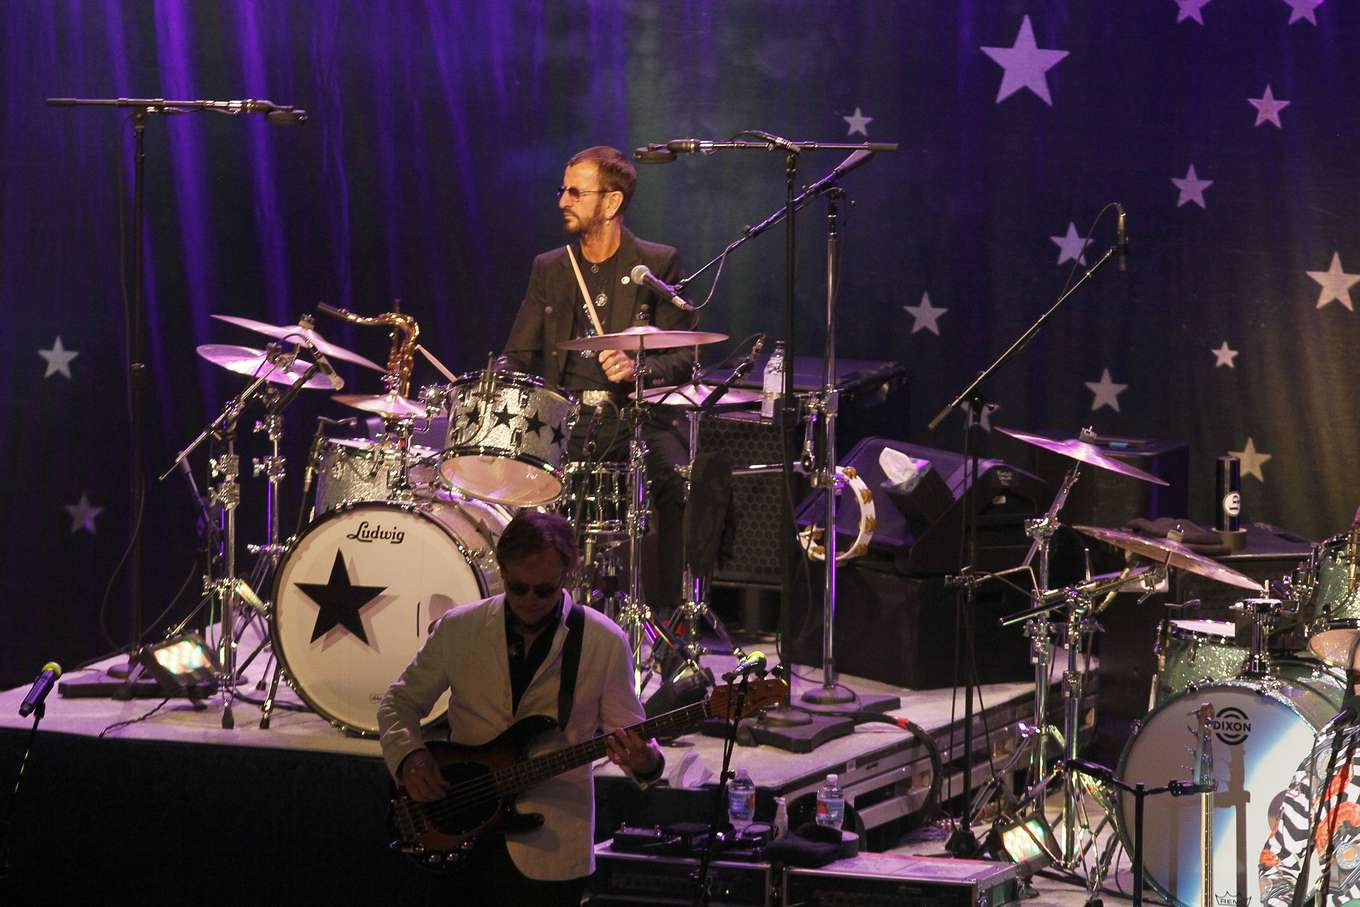 Ringo Starr Plays The Drums During A Friends Of Music Private Concert At Ruth Eckerd Hall